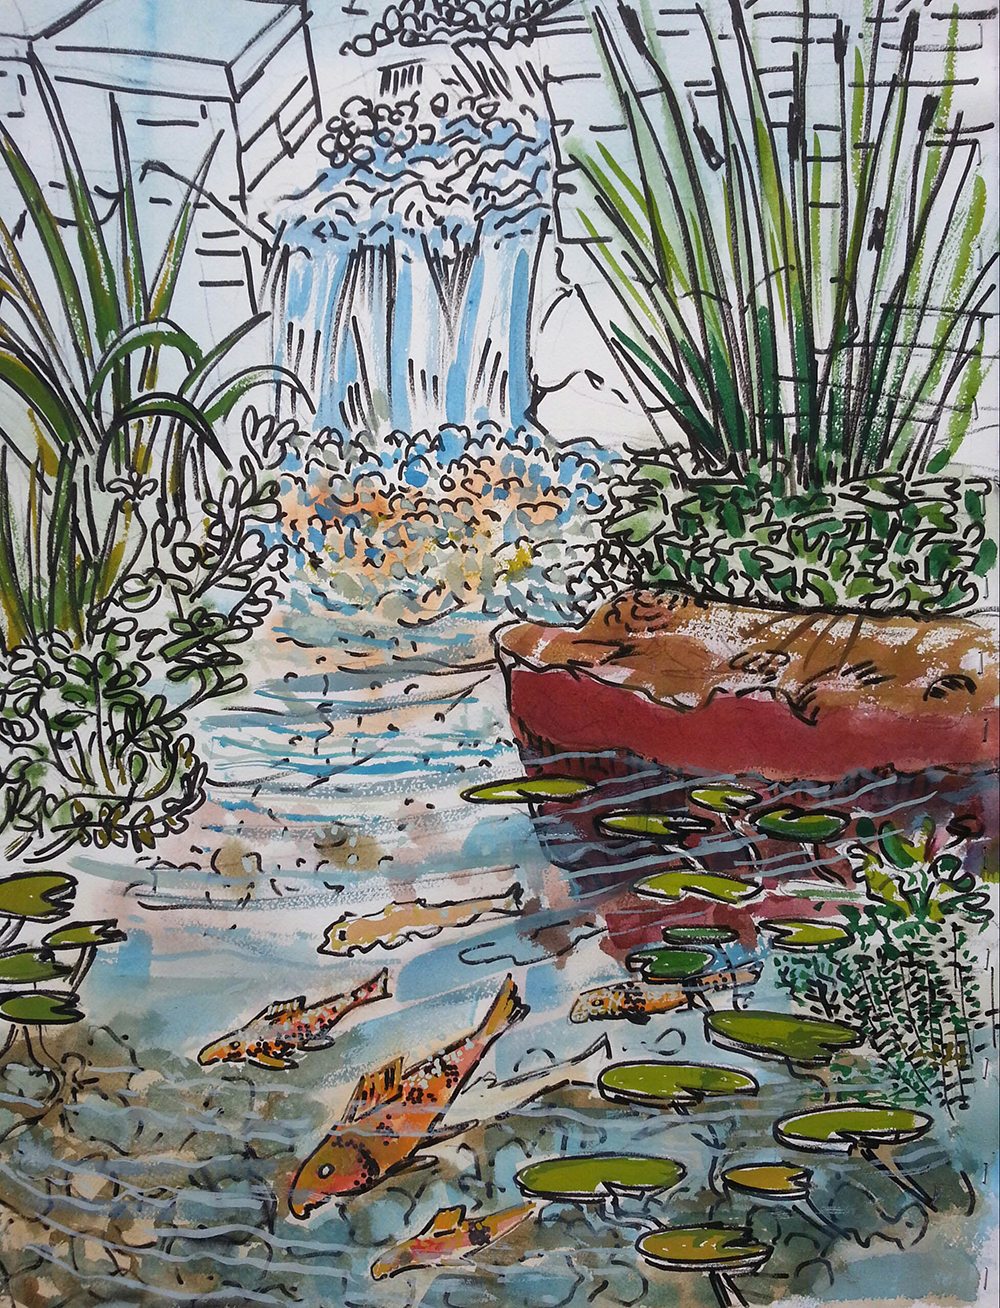 Fishpond watercolor 30 x 22